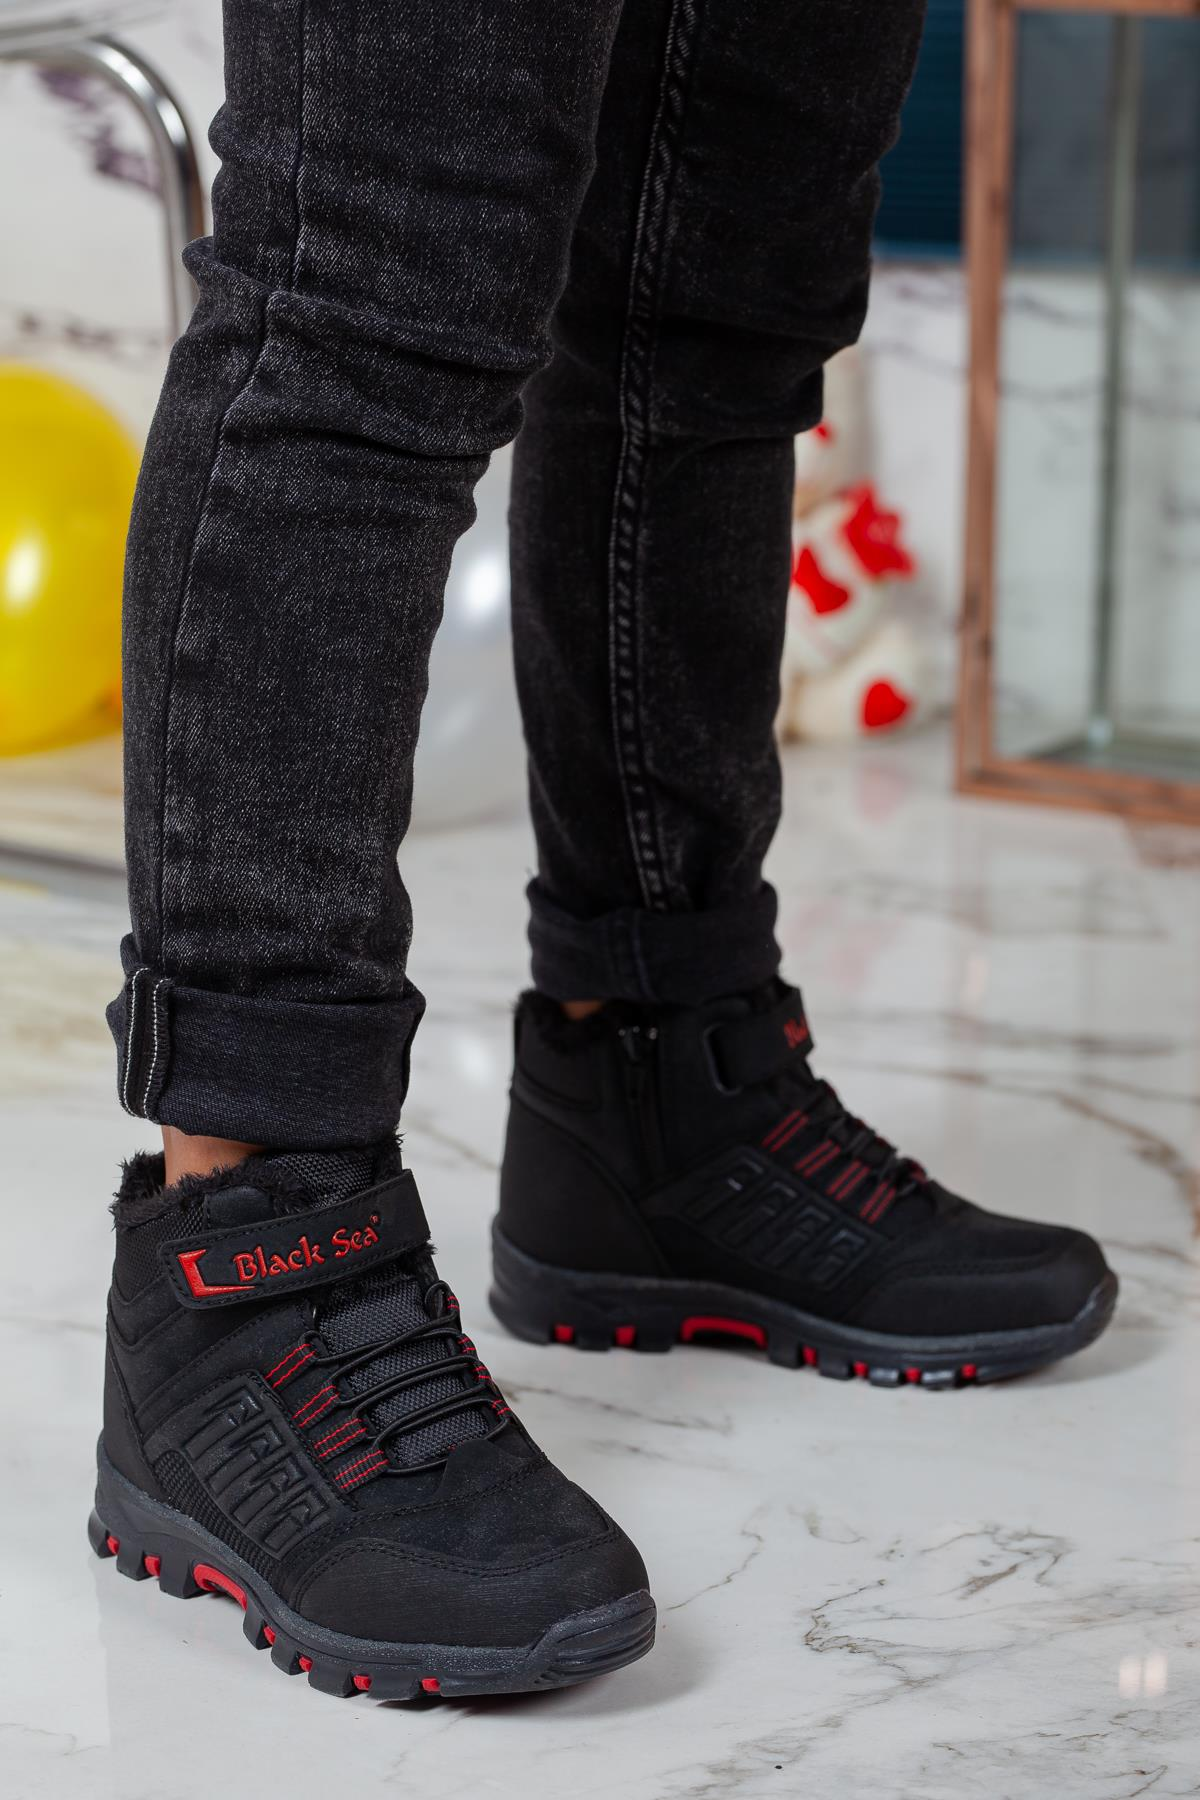 Kid's Lace-up Cold & Waterproof Black Boots